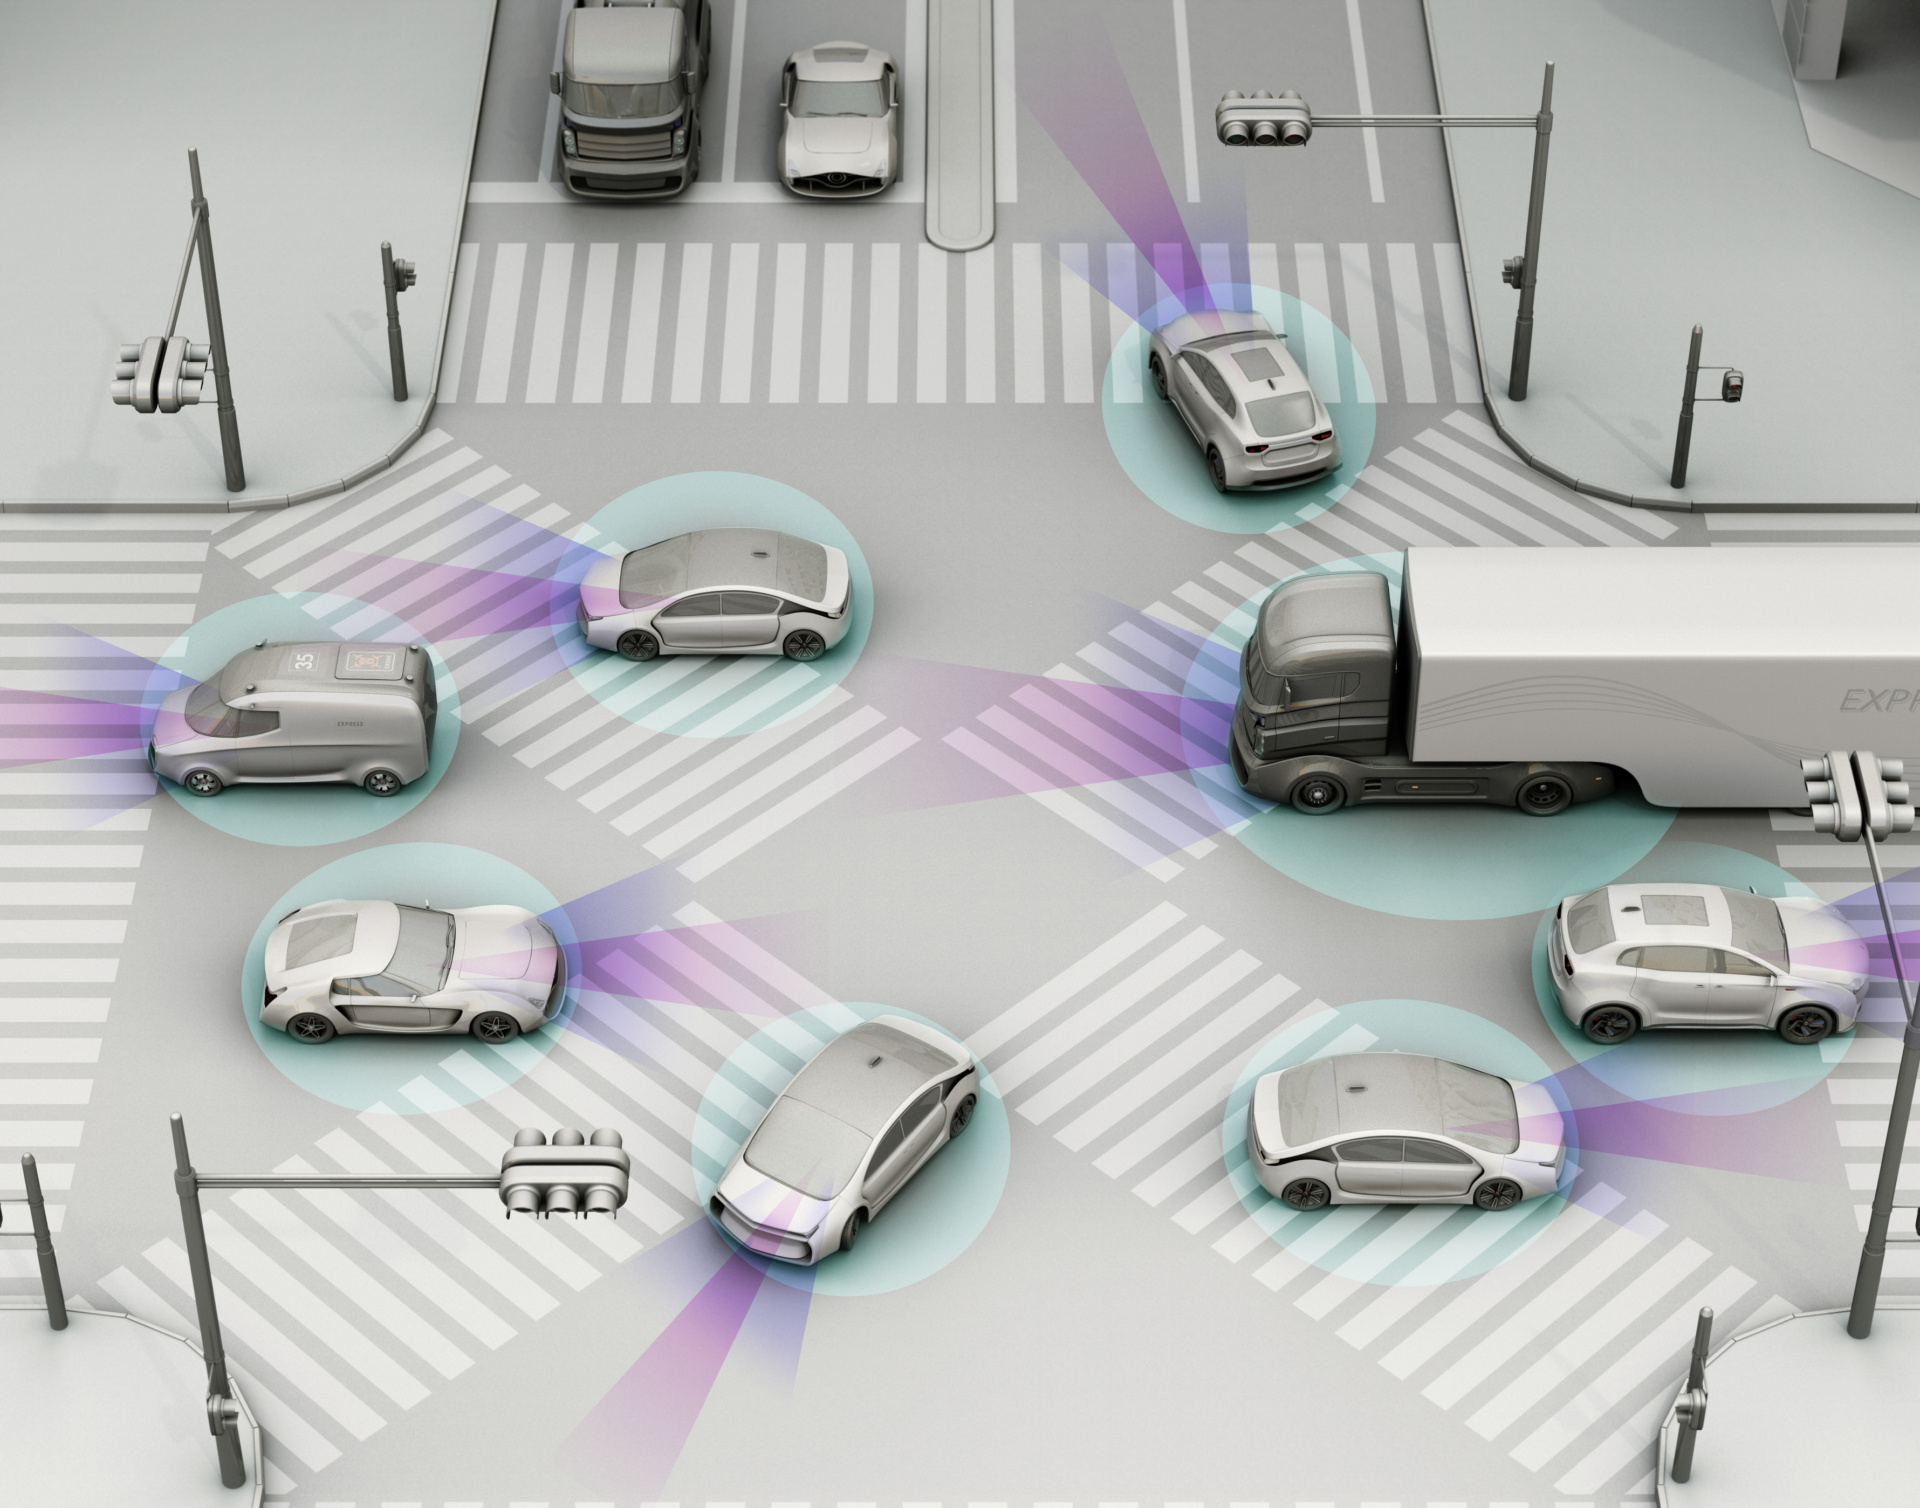 7 Ways Cities Should Prepare for Autonomous Vehicles